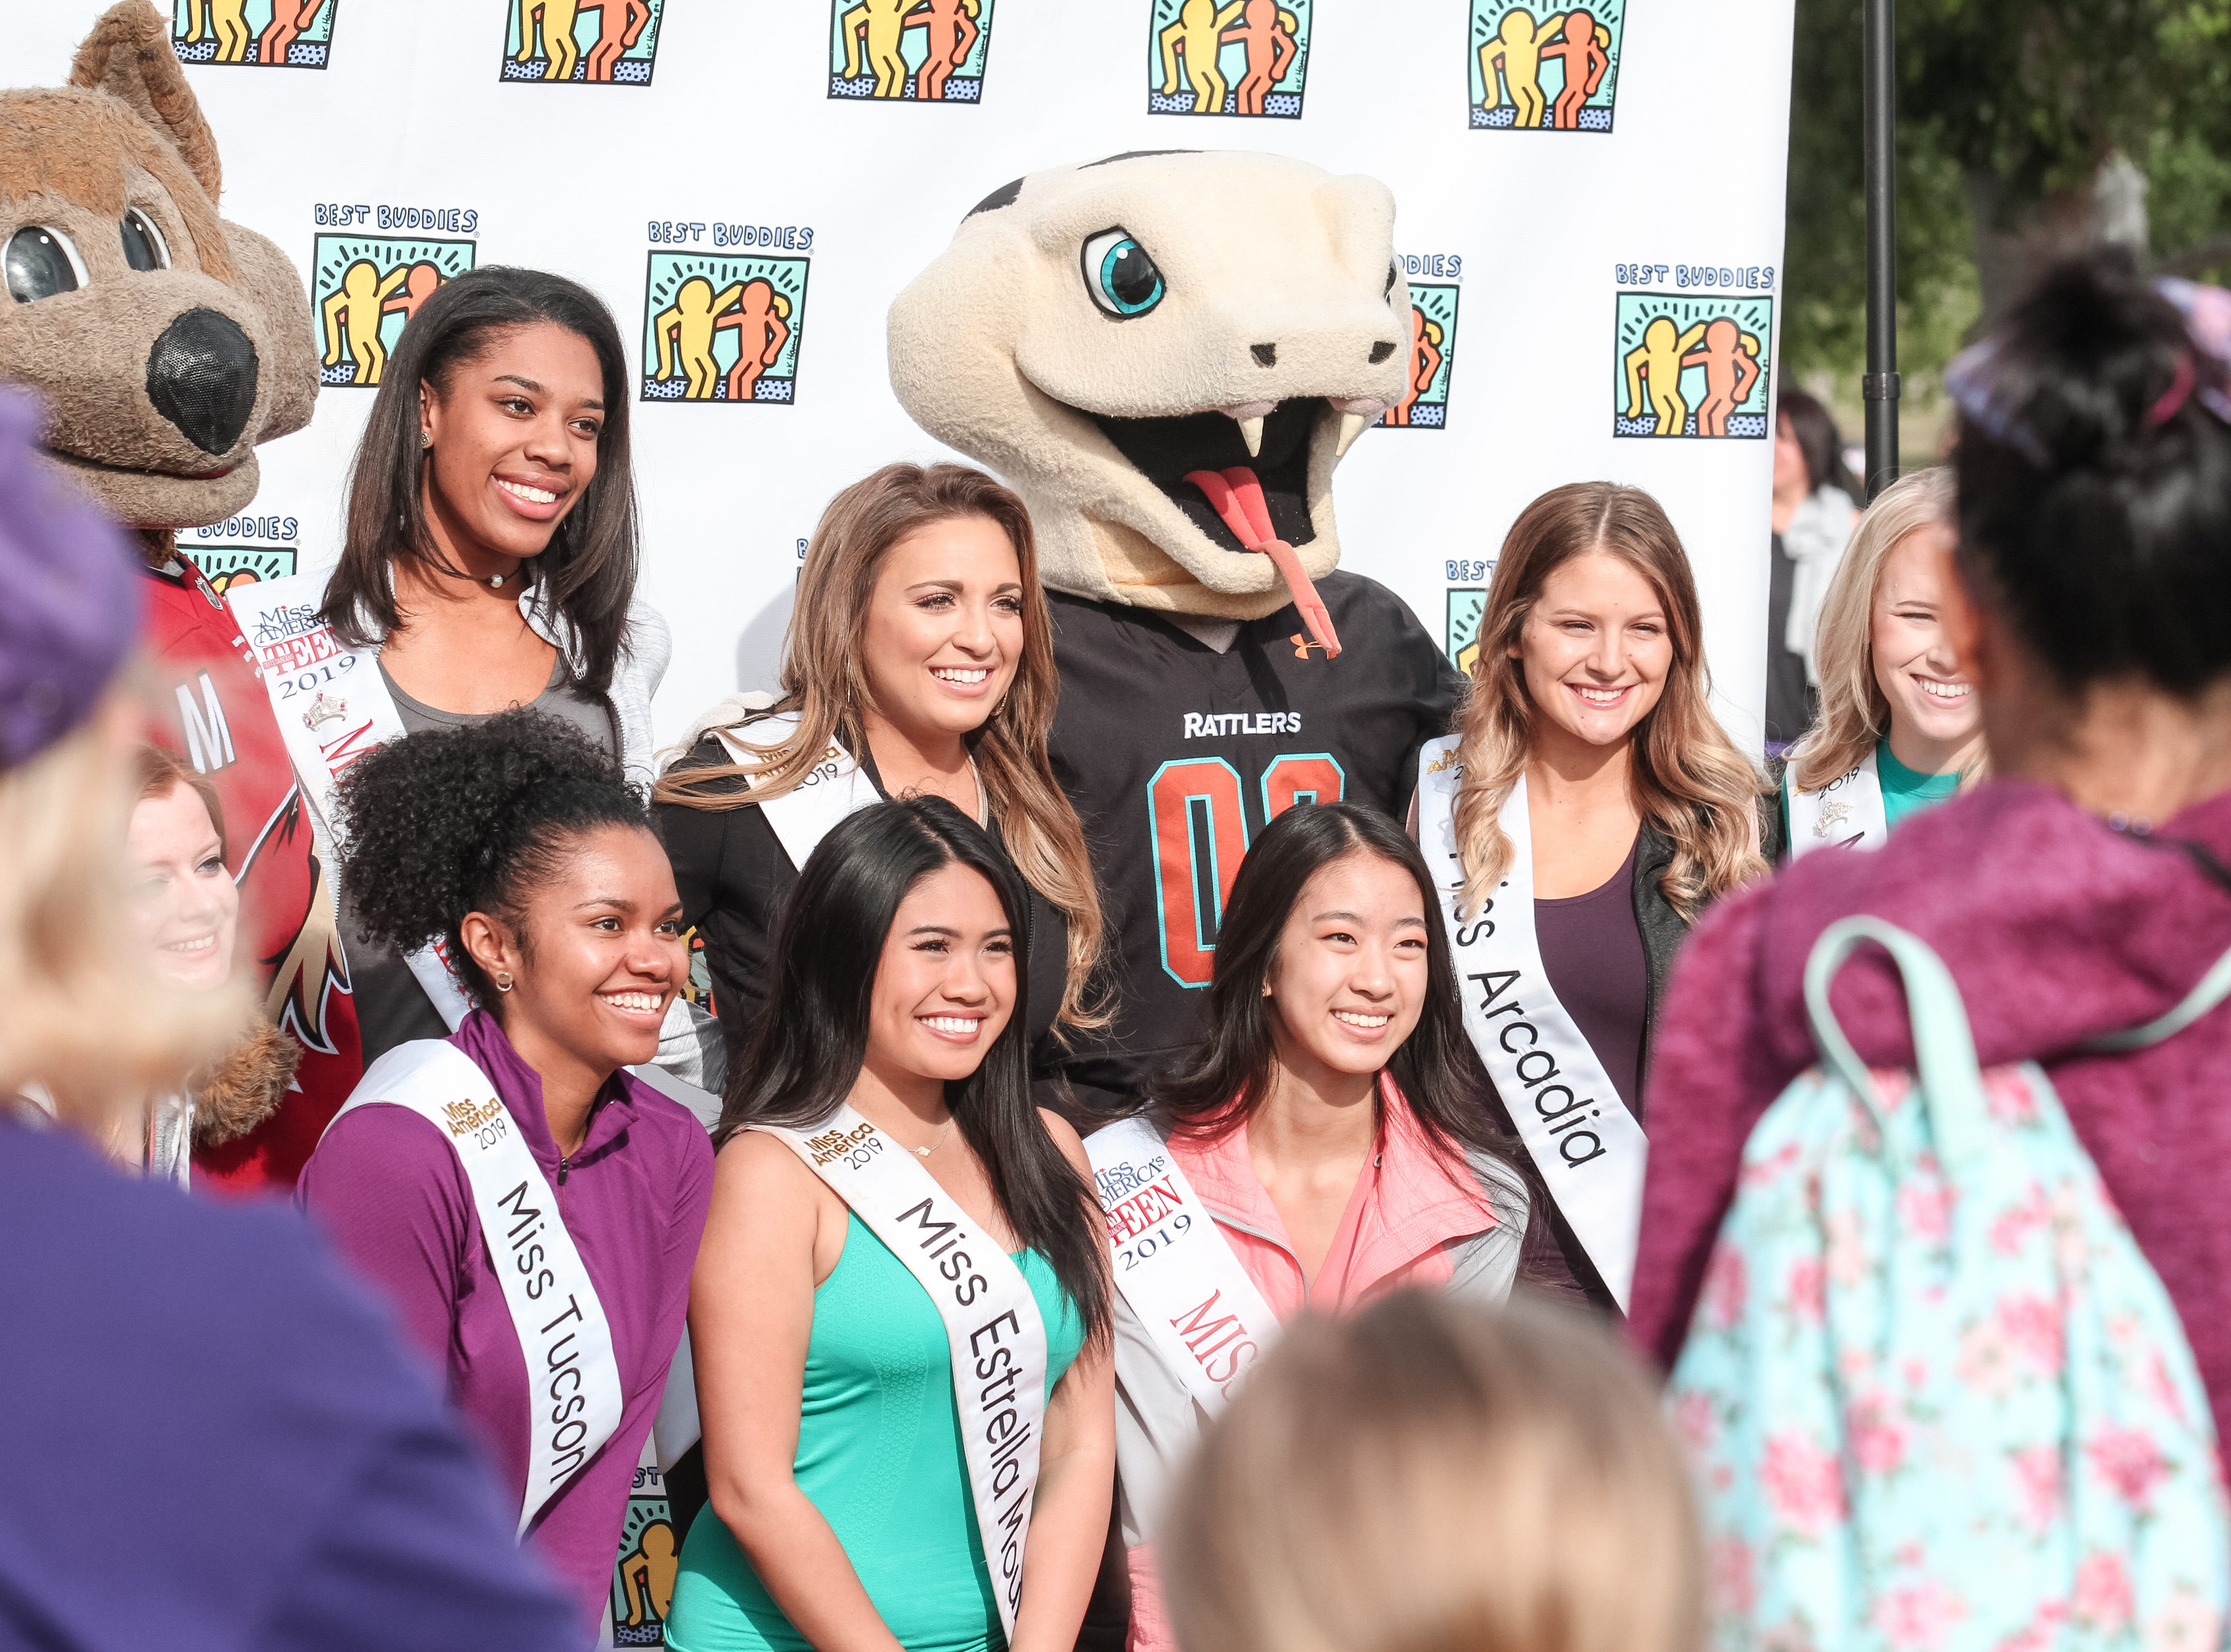 Beauty contestants pose for a photo at The Best Buddies Friendship Walk at Kiwanis Park in Tempe on March 23, 2019.